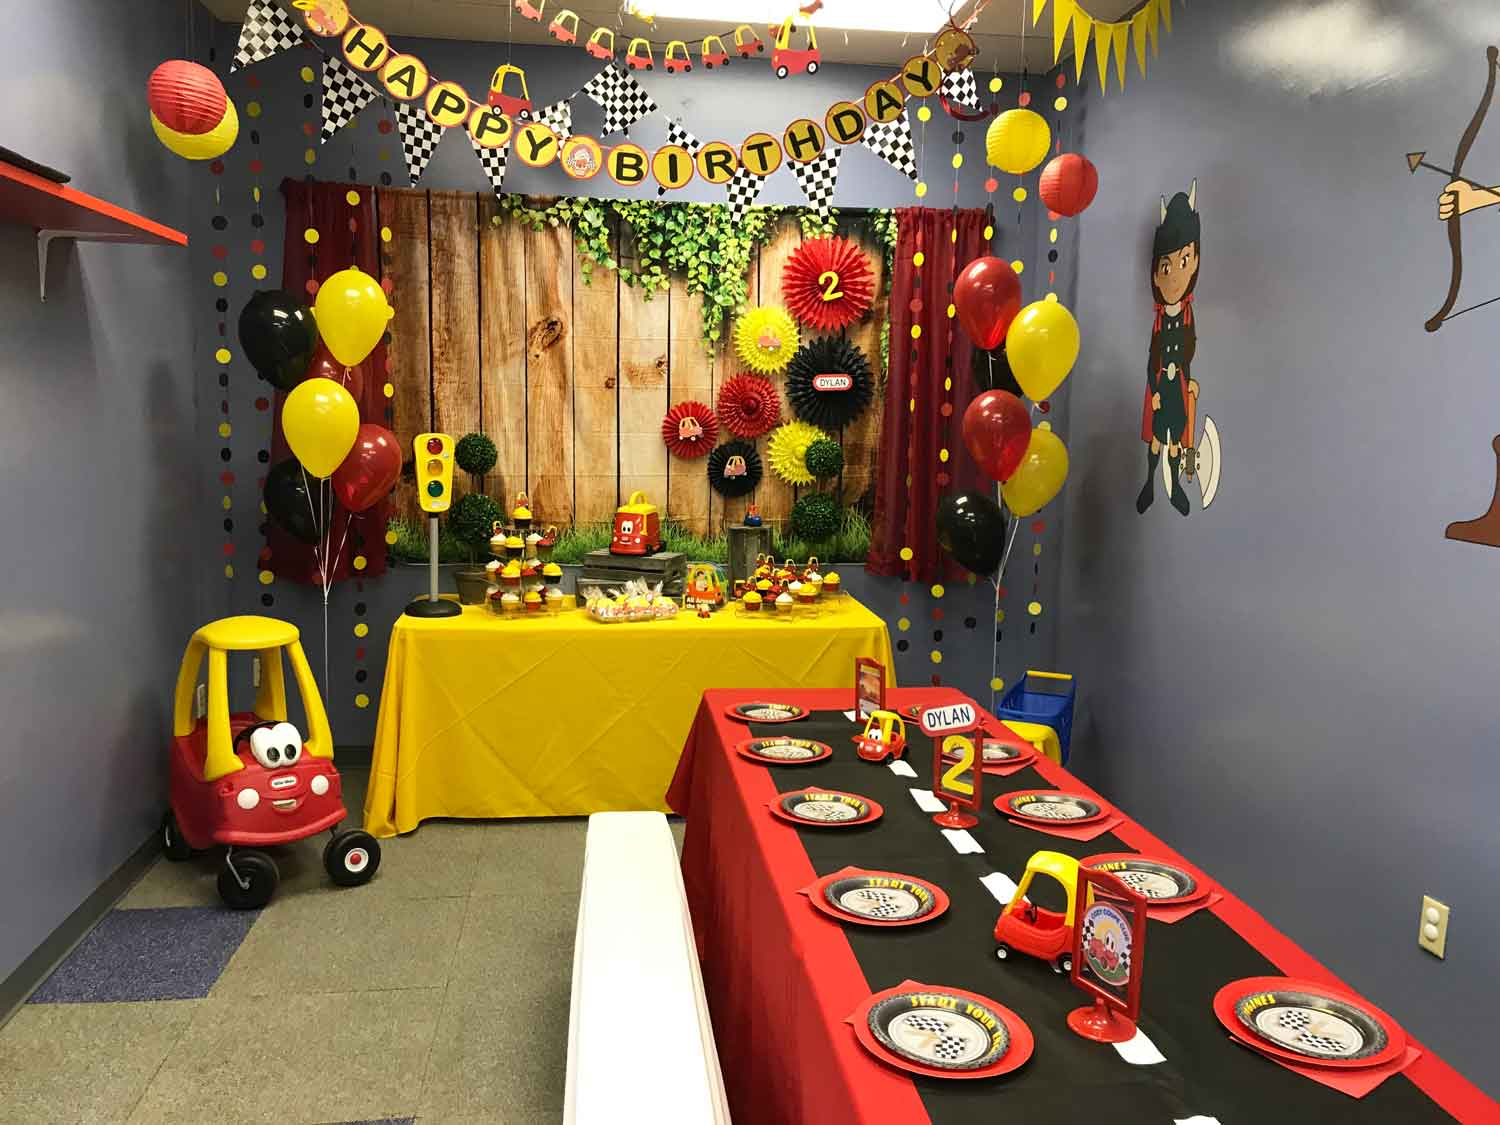 cozy-coupe-toddler-birthday-party.jpg